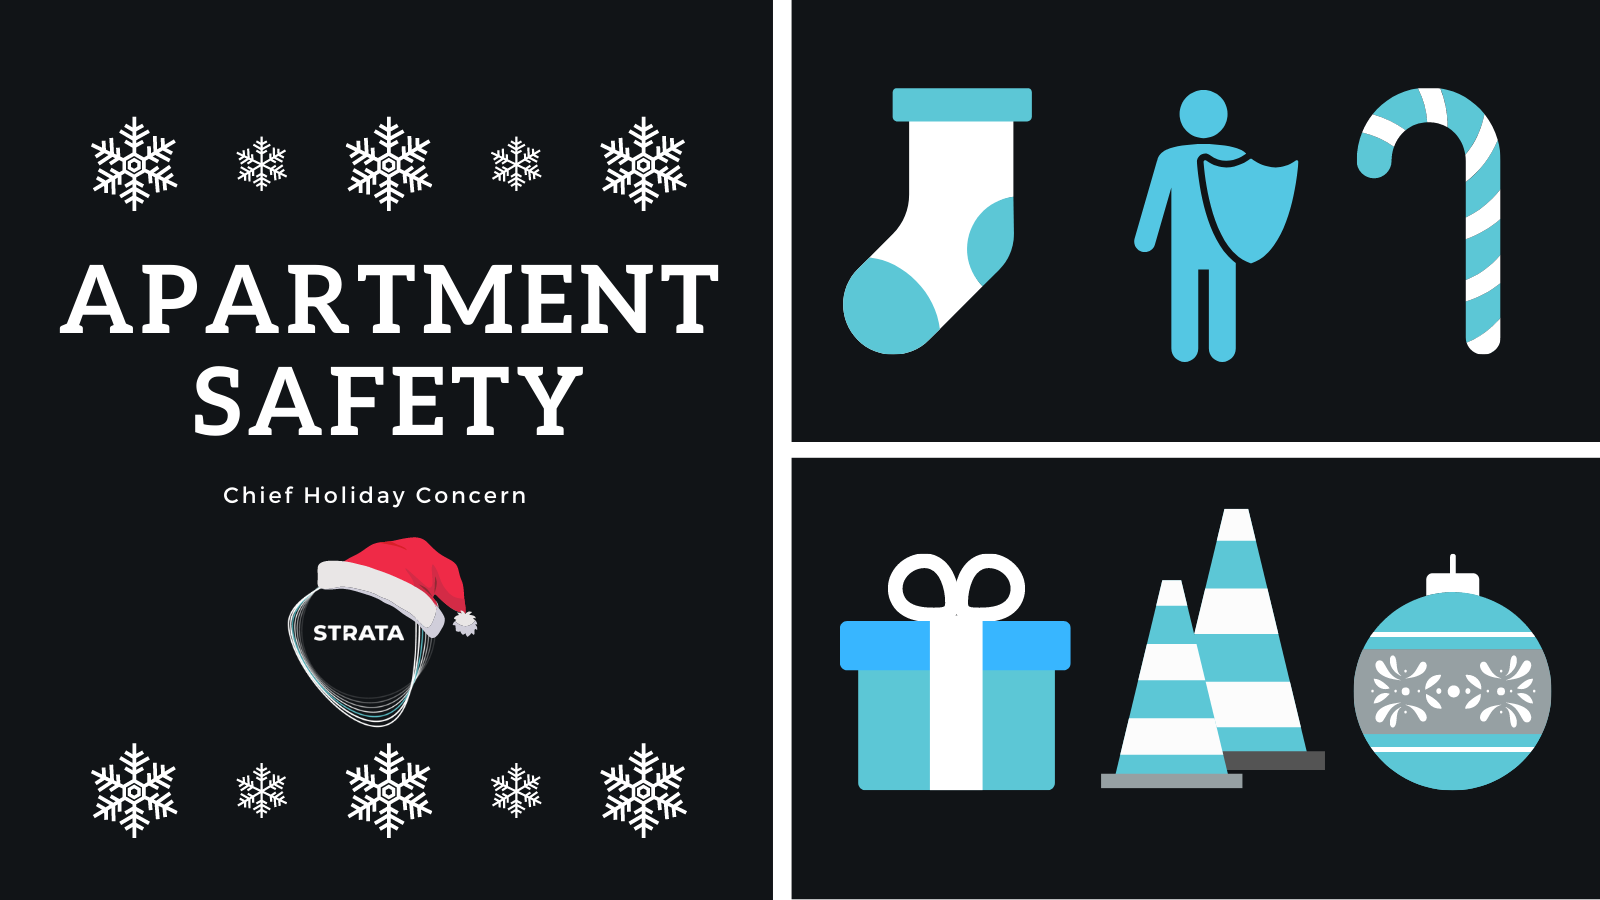 APARTMENT SAFETY- OWNERS CORPORATION - BODY CORPORATE